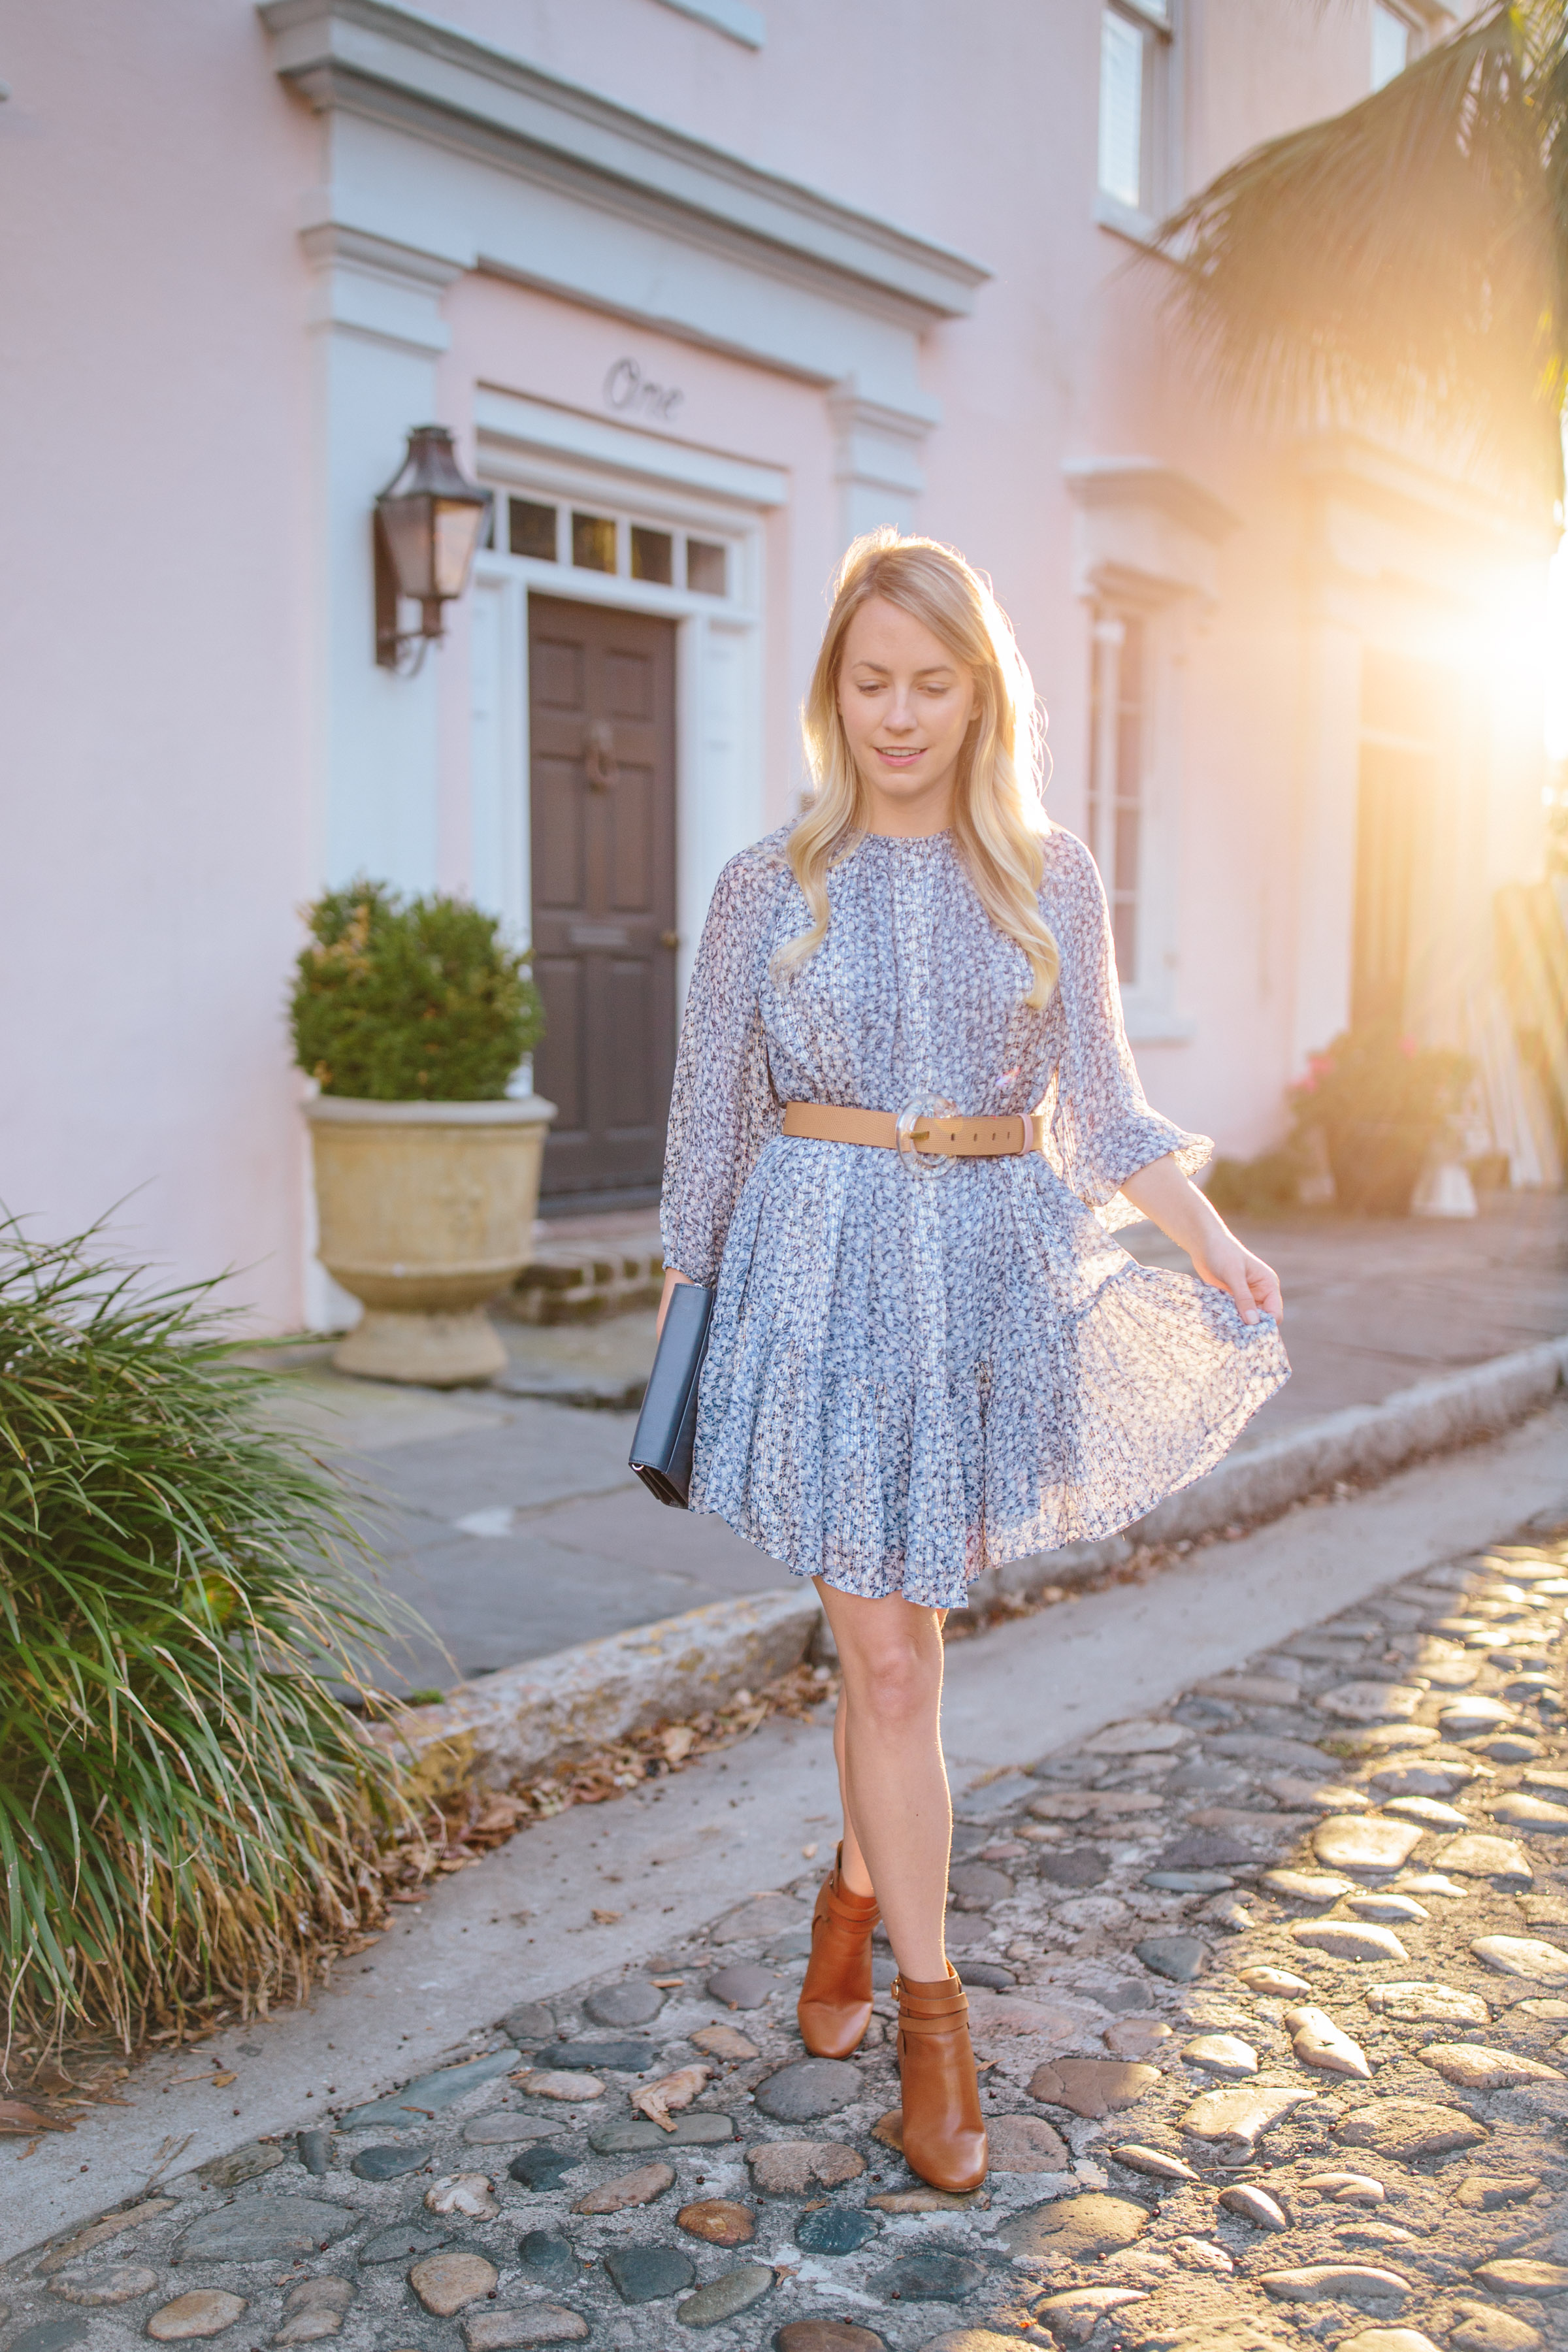 Top cocktail dresses on sale to buy for the holiday season // Rhyme & Reason